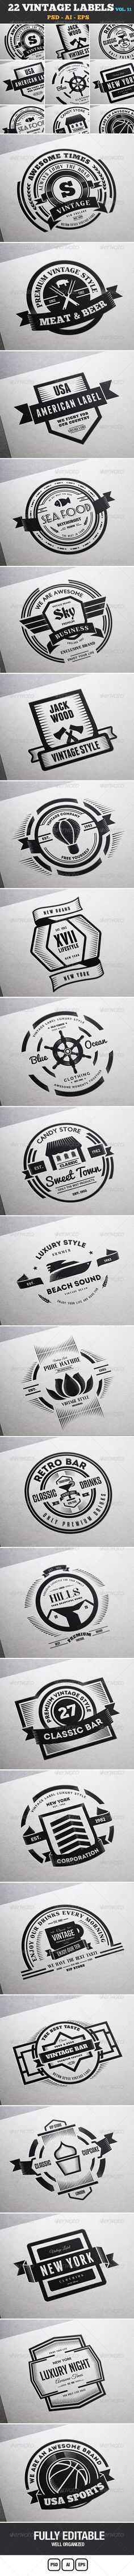 22 Vintage Labels & Badges / Logos / Insignias Template | Buy and Download: http://graphicriver.net/item/22-vintage-labels-badges-logos-insignias-v11/7533985?WT.ac=category_thumb&WT.z_author=designdistrictmx&ref=ksioks